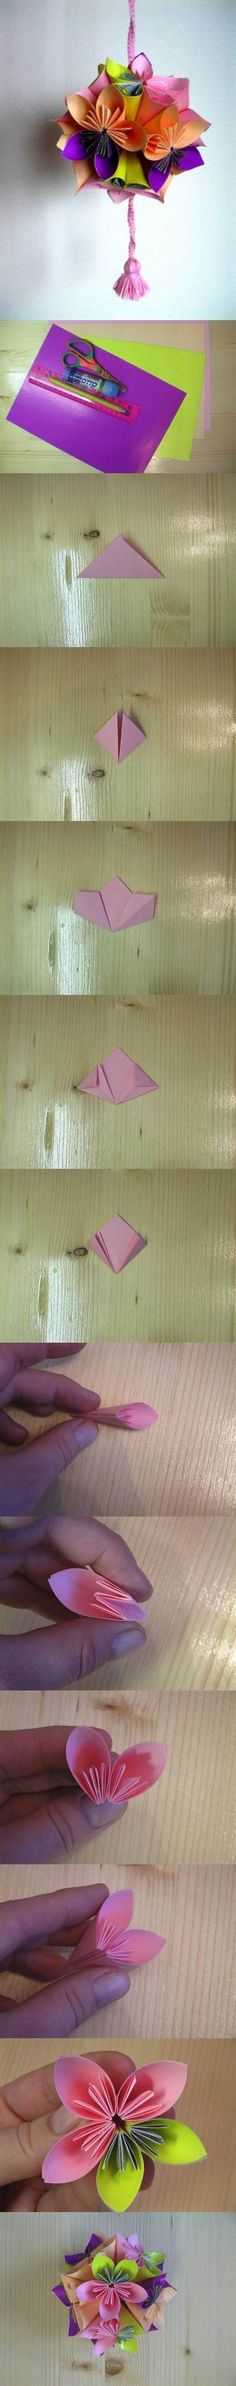 DIY Origami Paper Flower Ball #craft #paper #flower #Origami